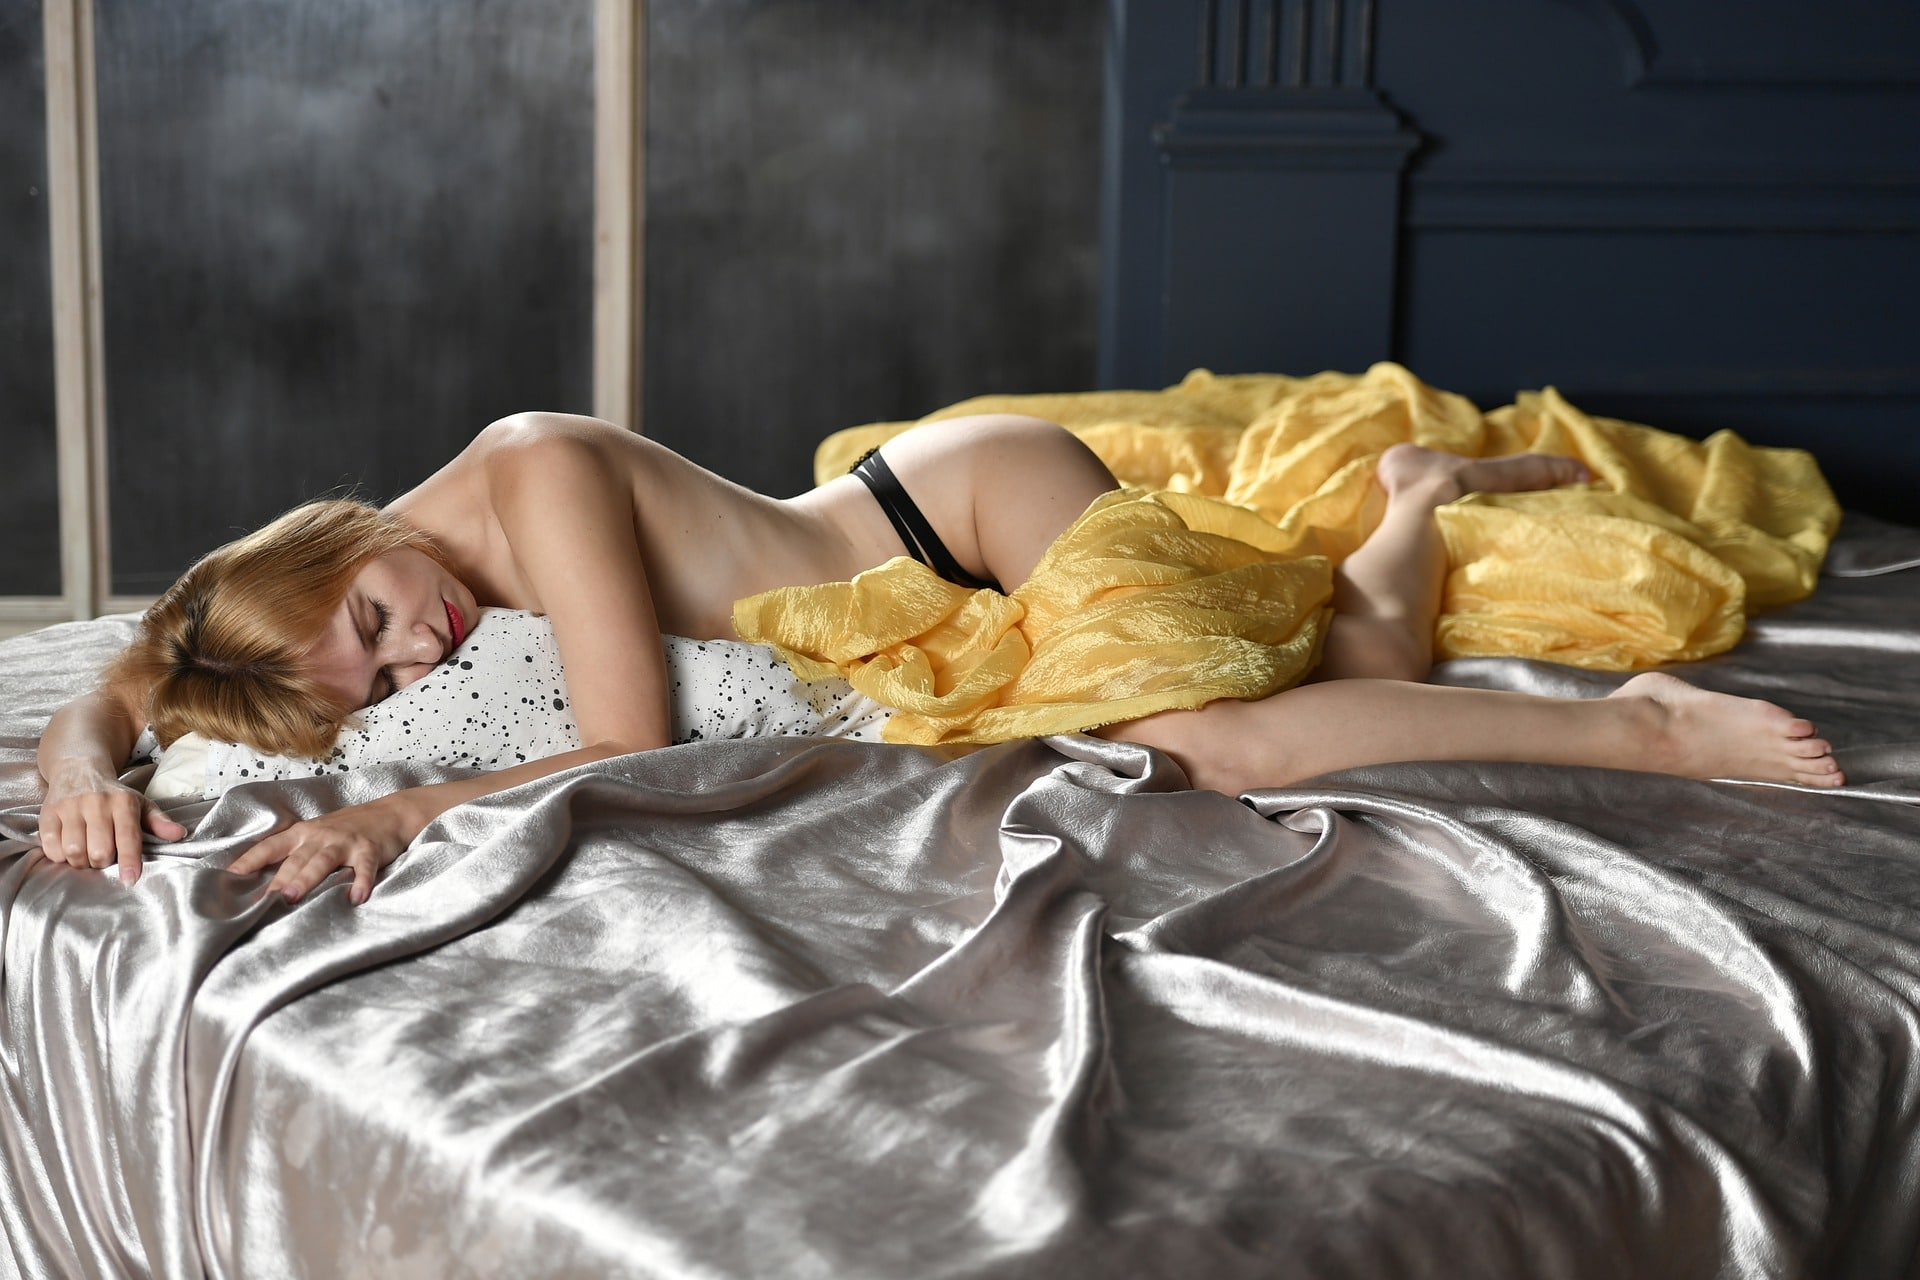 woman lays half naked on bed